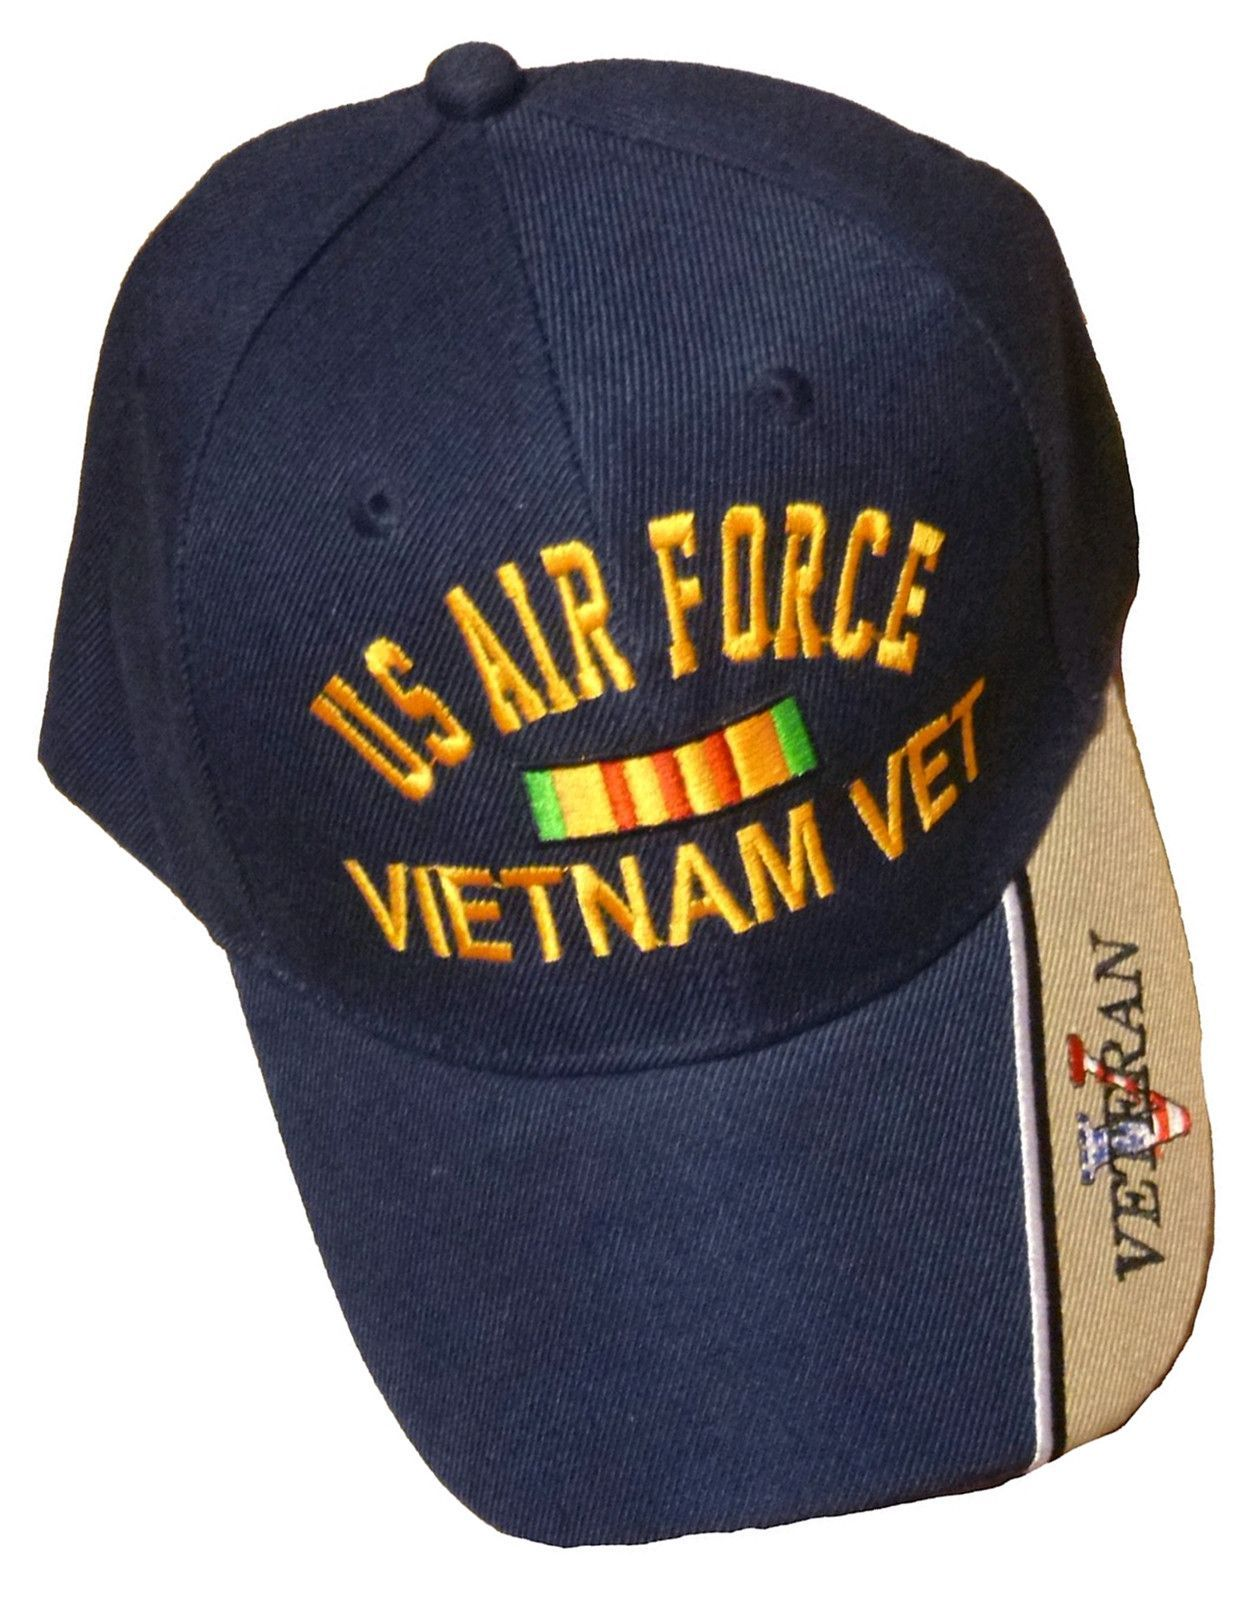 29085e558f0 US Air Force Vietnam Vet Baseball Cap Blue and Tan Embroidered Military  Logo Veteran Hat